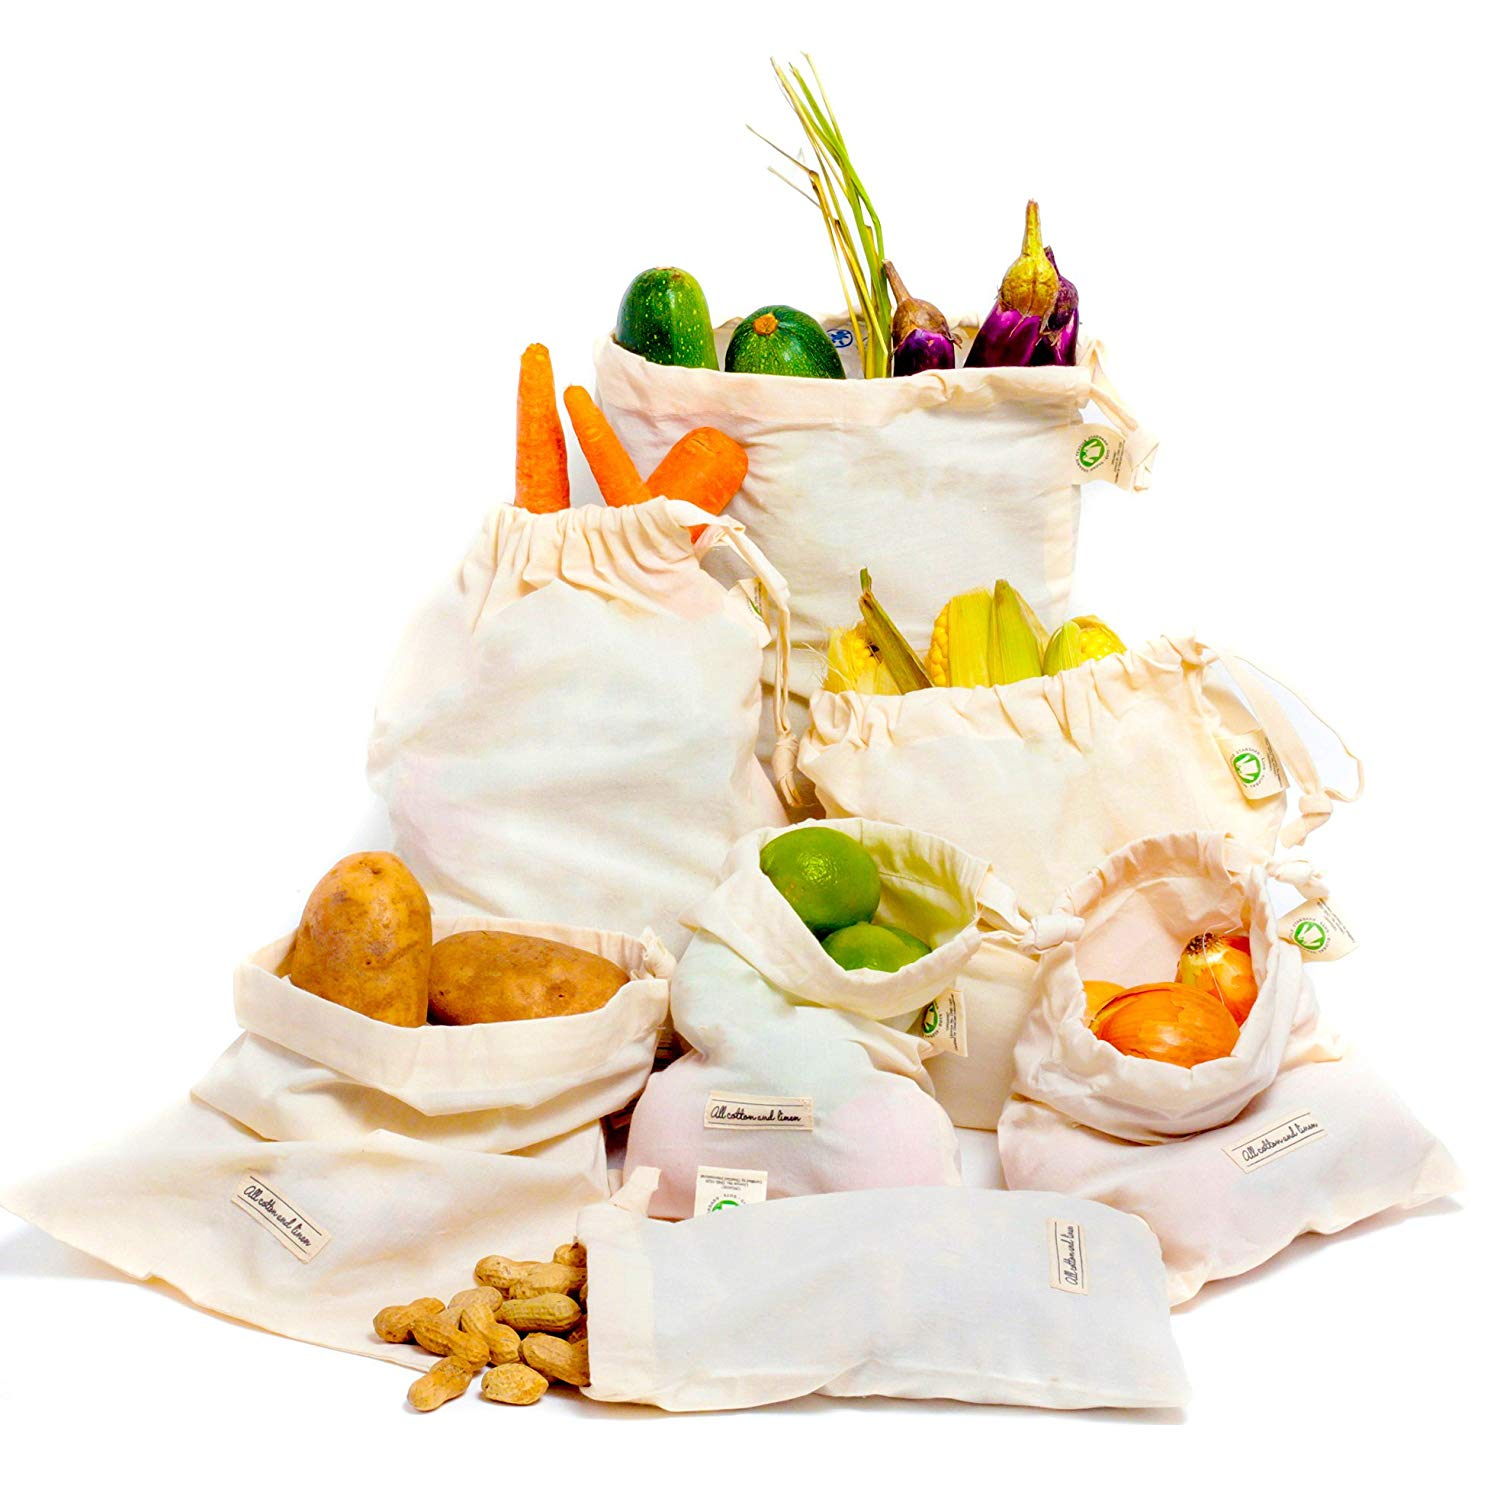 All Cotton and Linen Reusable Mesh Produce Bags